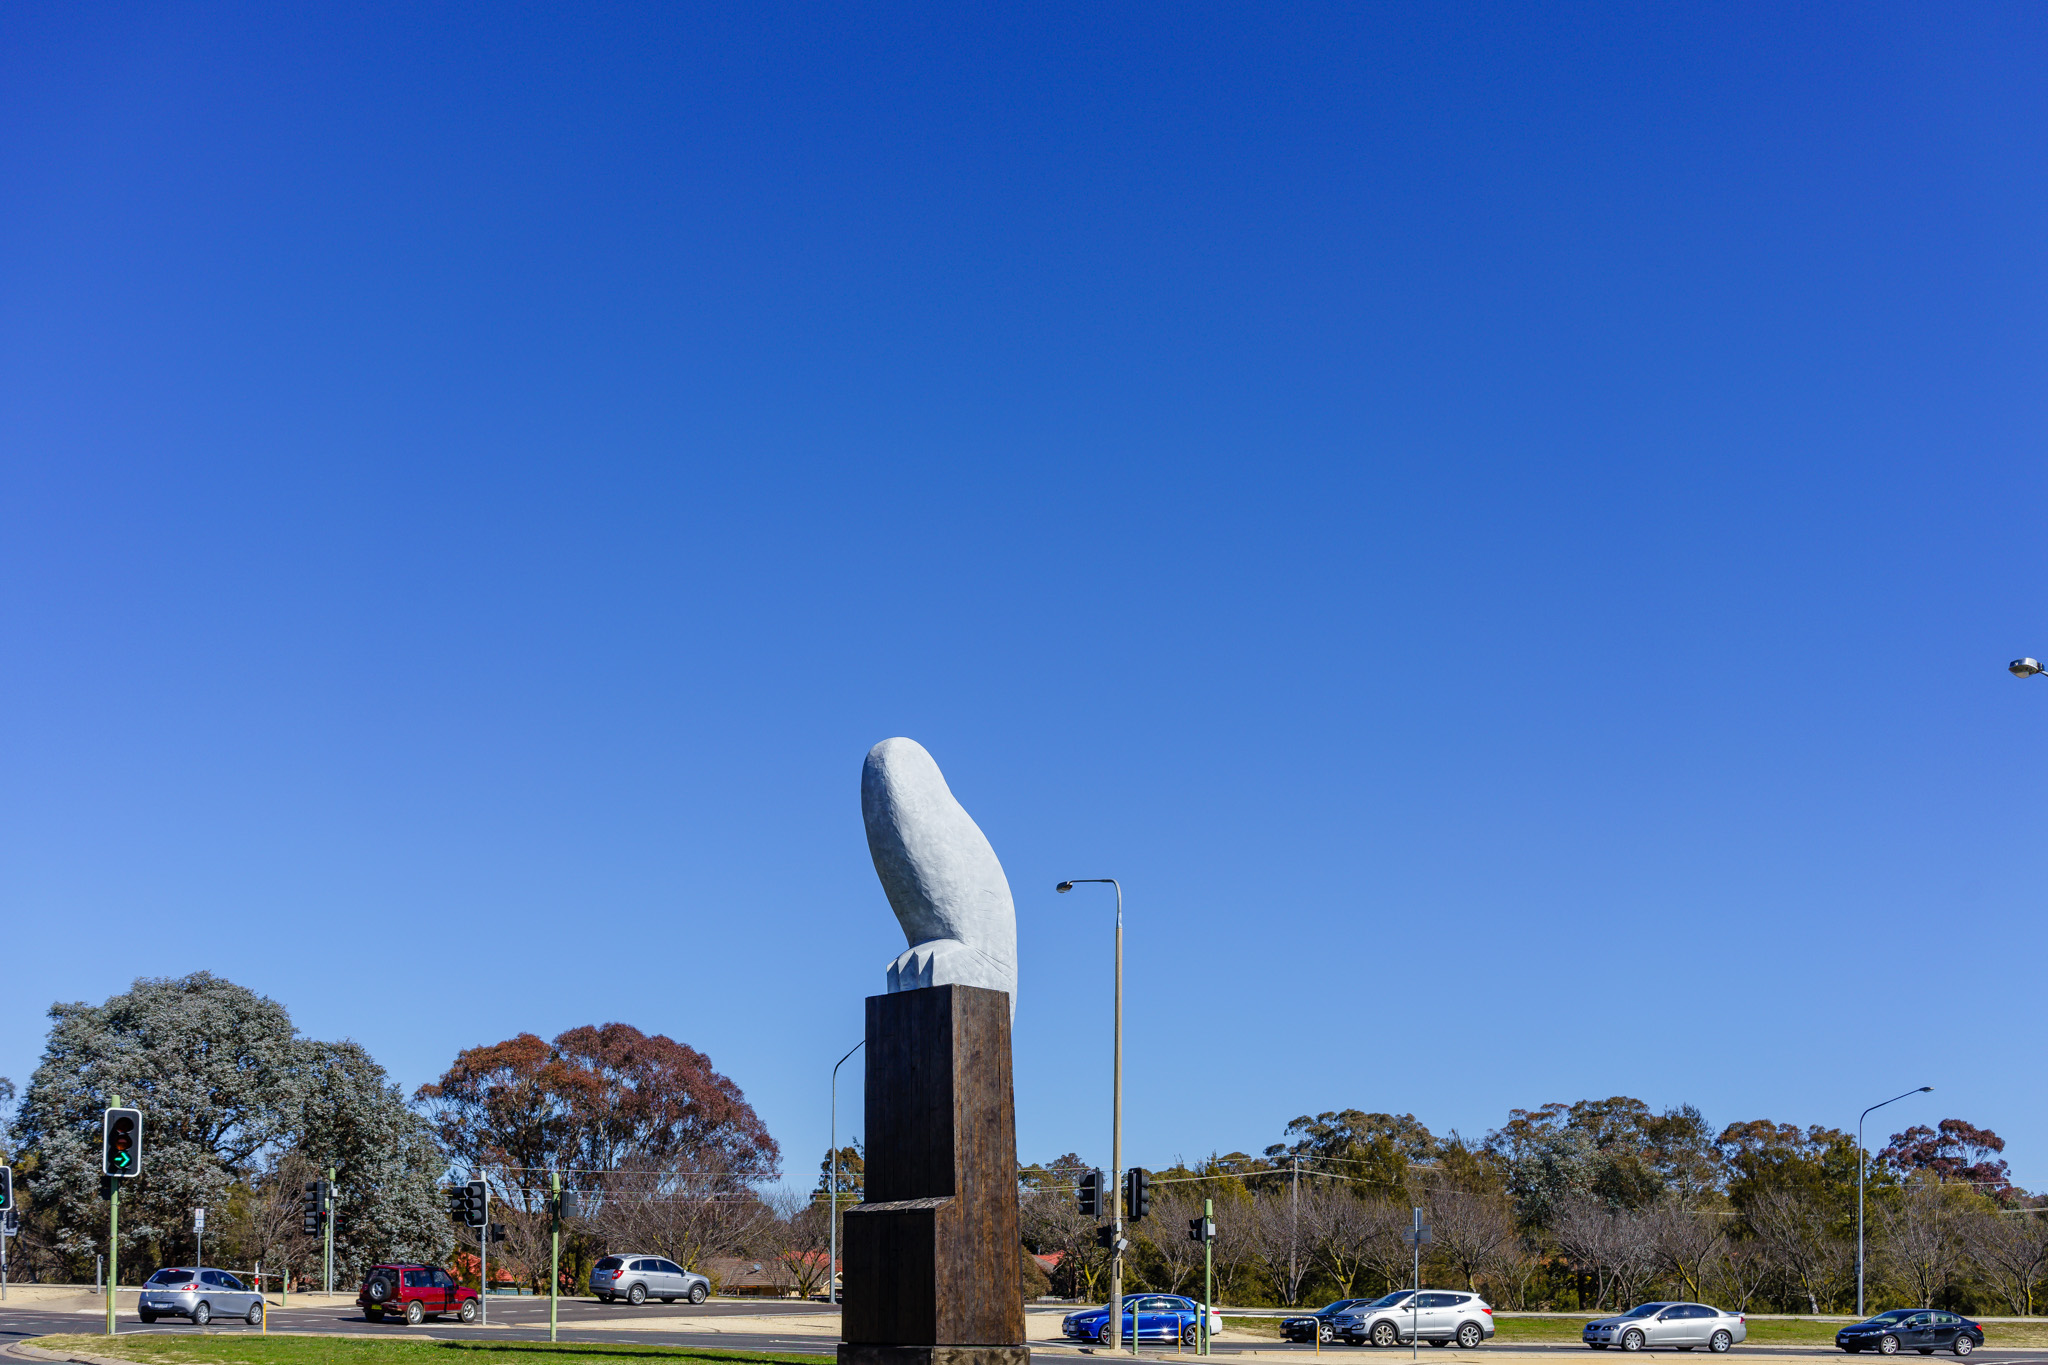 Owl statue T-juntion Belconnen Way and Benjamin Way